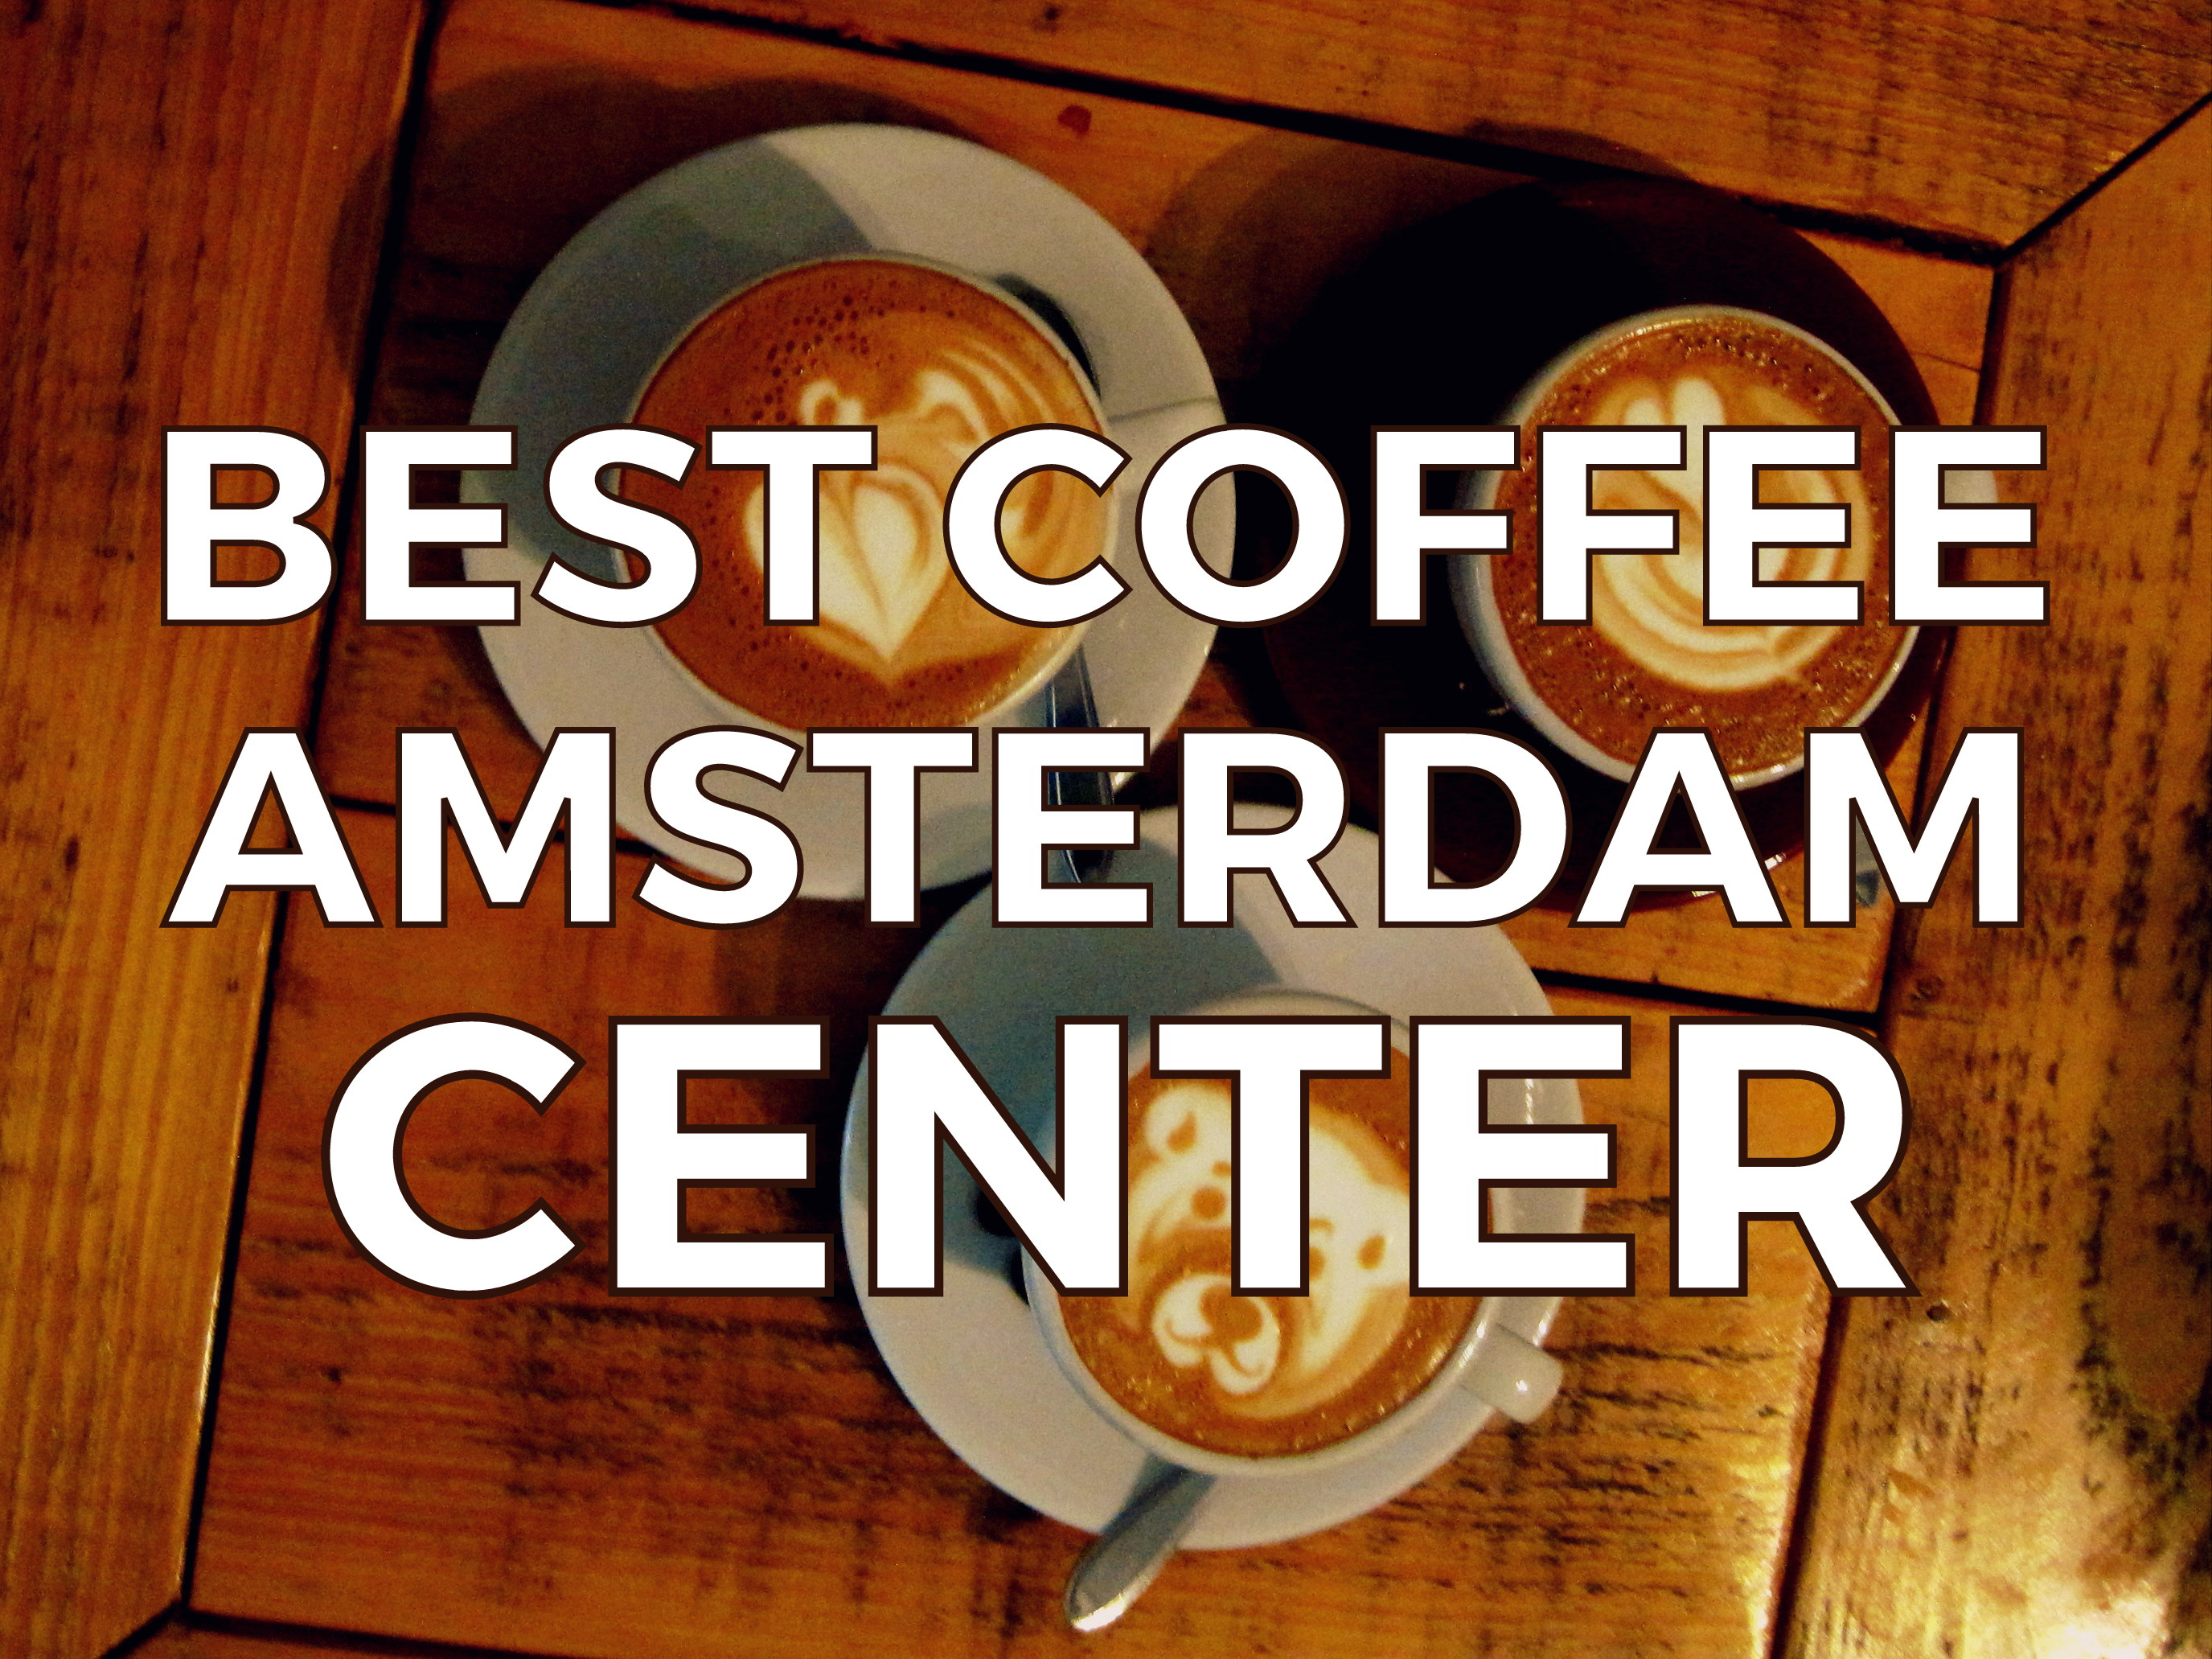 Do you live, work or stay in the center of Amsterdam or are you just shopping or strolling around and need a pick me up? Here are our favorite coffee (and tea) spots in the heart of Amsterdam.